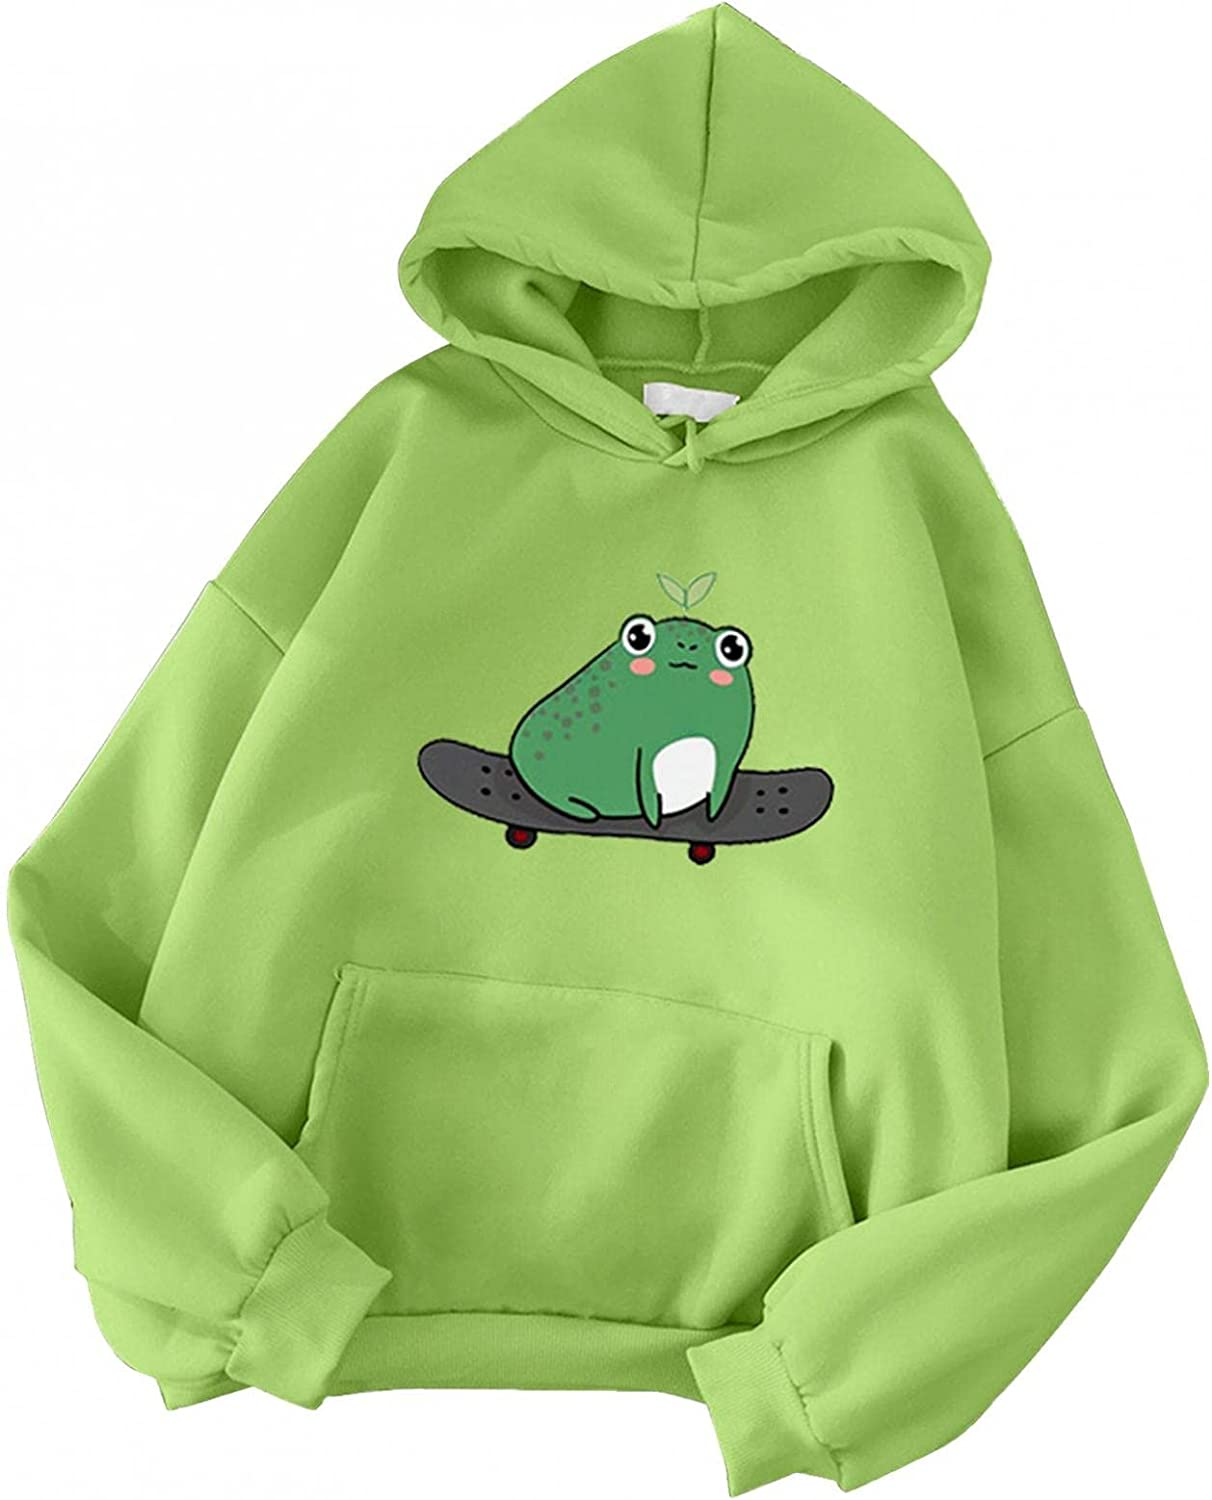 Haheyrte Hoodies for Womens Long Sleeve Skateboarding Frog Printed Hooded Casual Loose Sweatshirts Pullover Tops Shirts